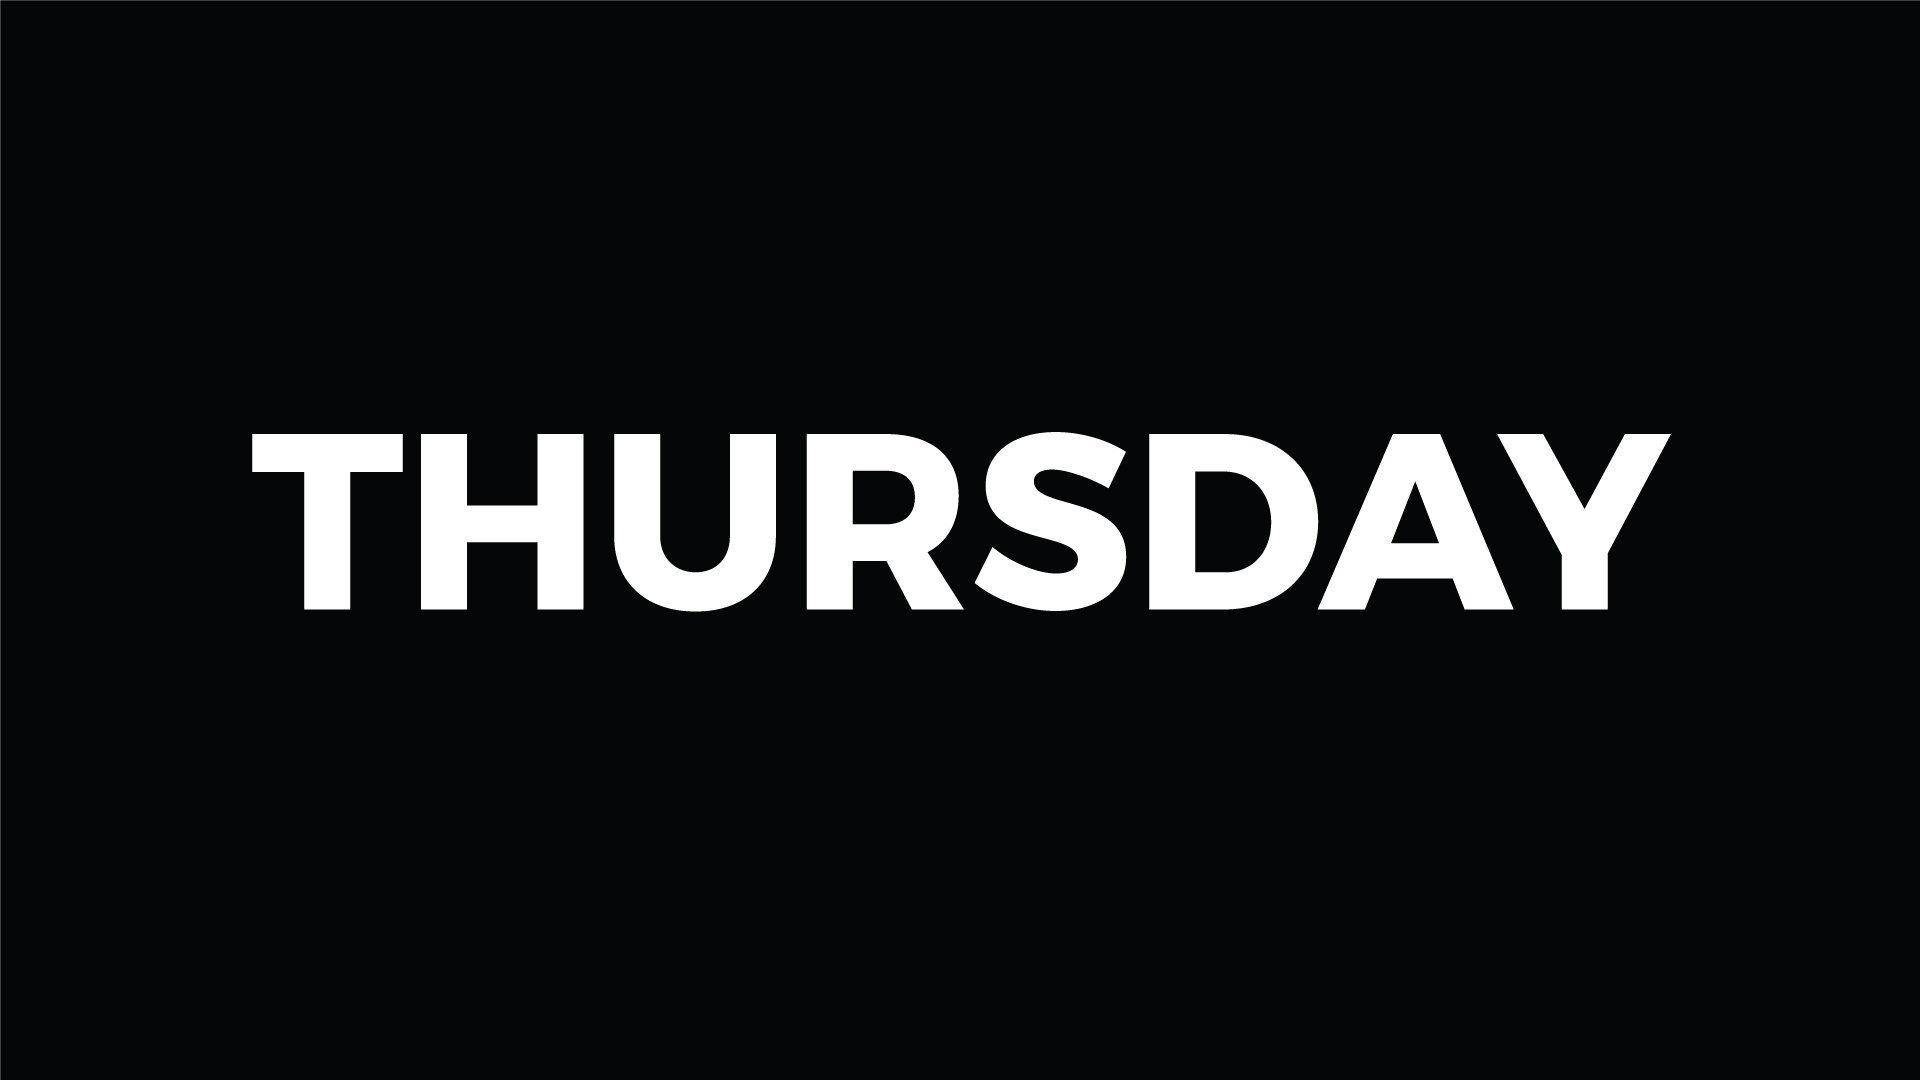 Songs About Thursday